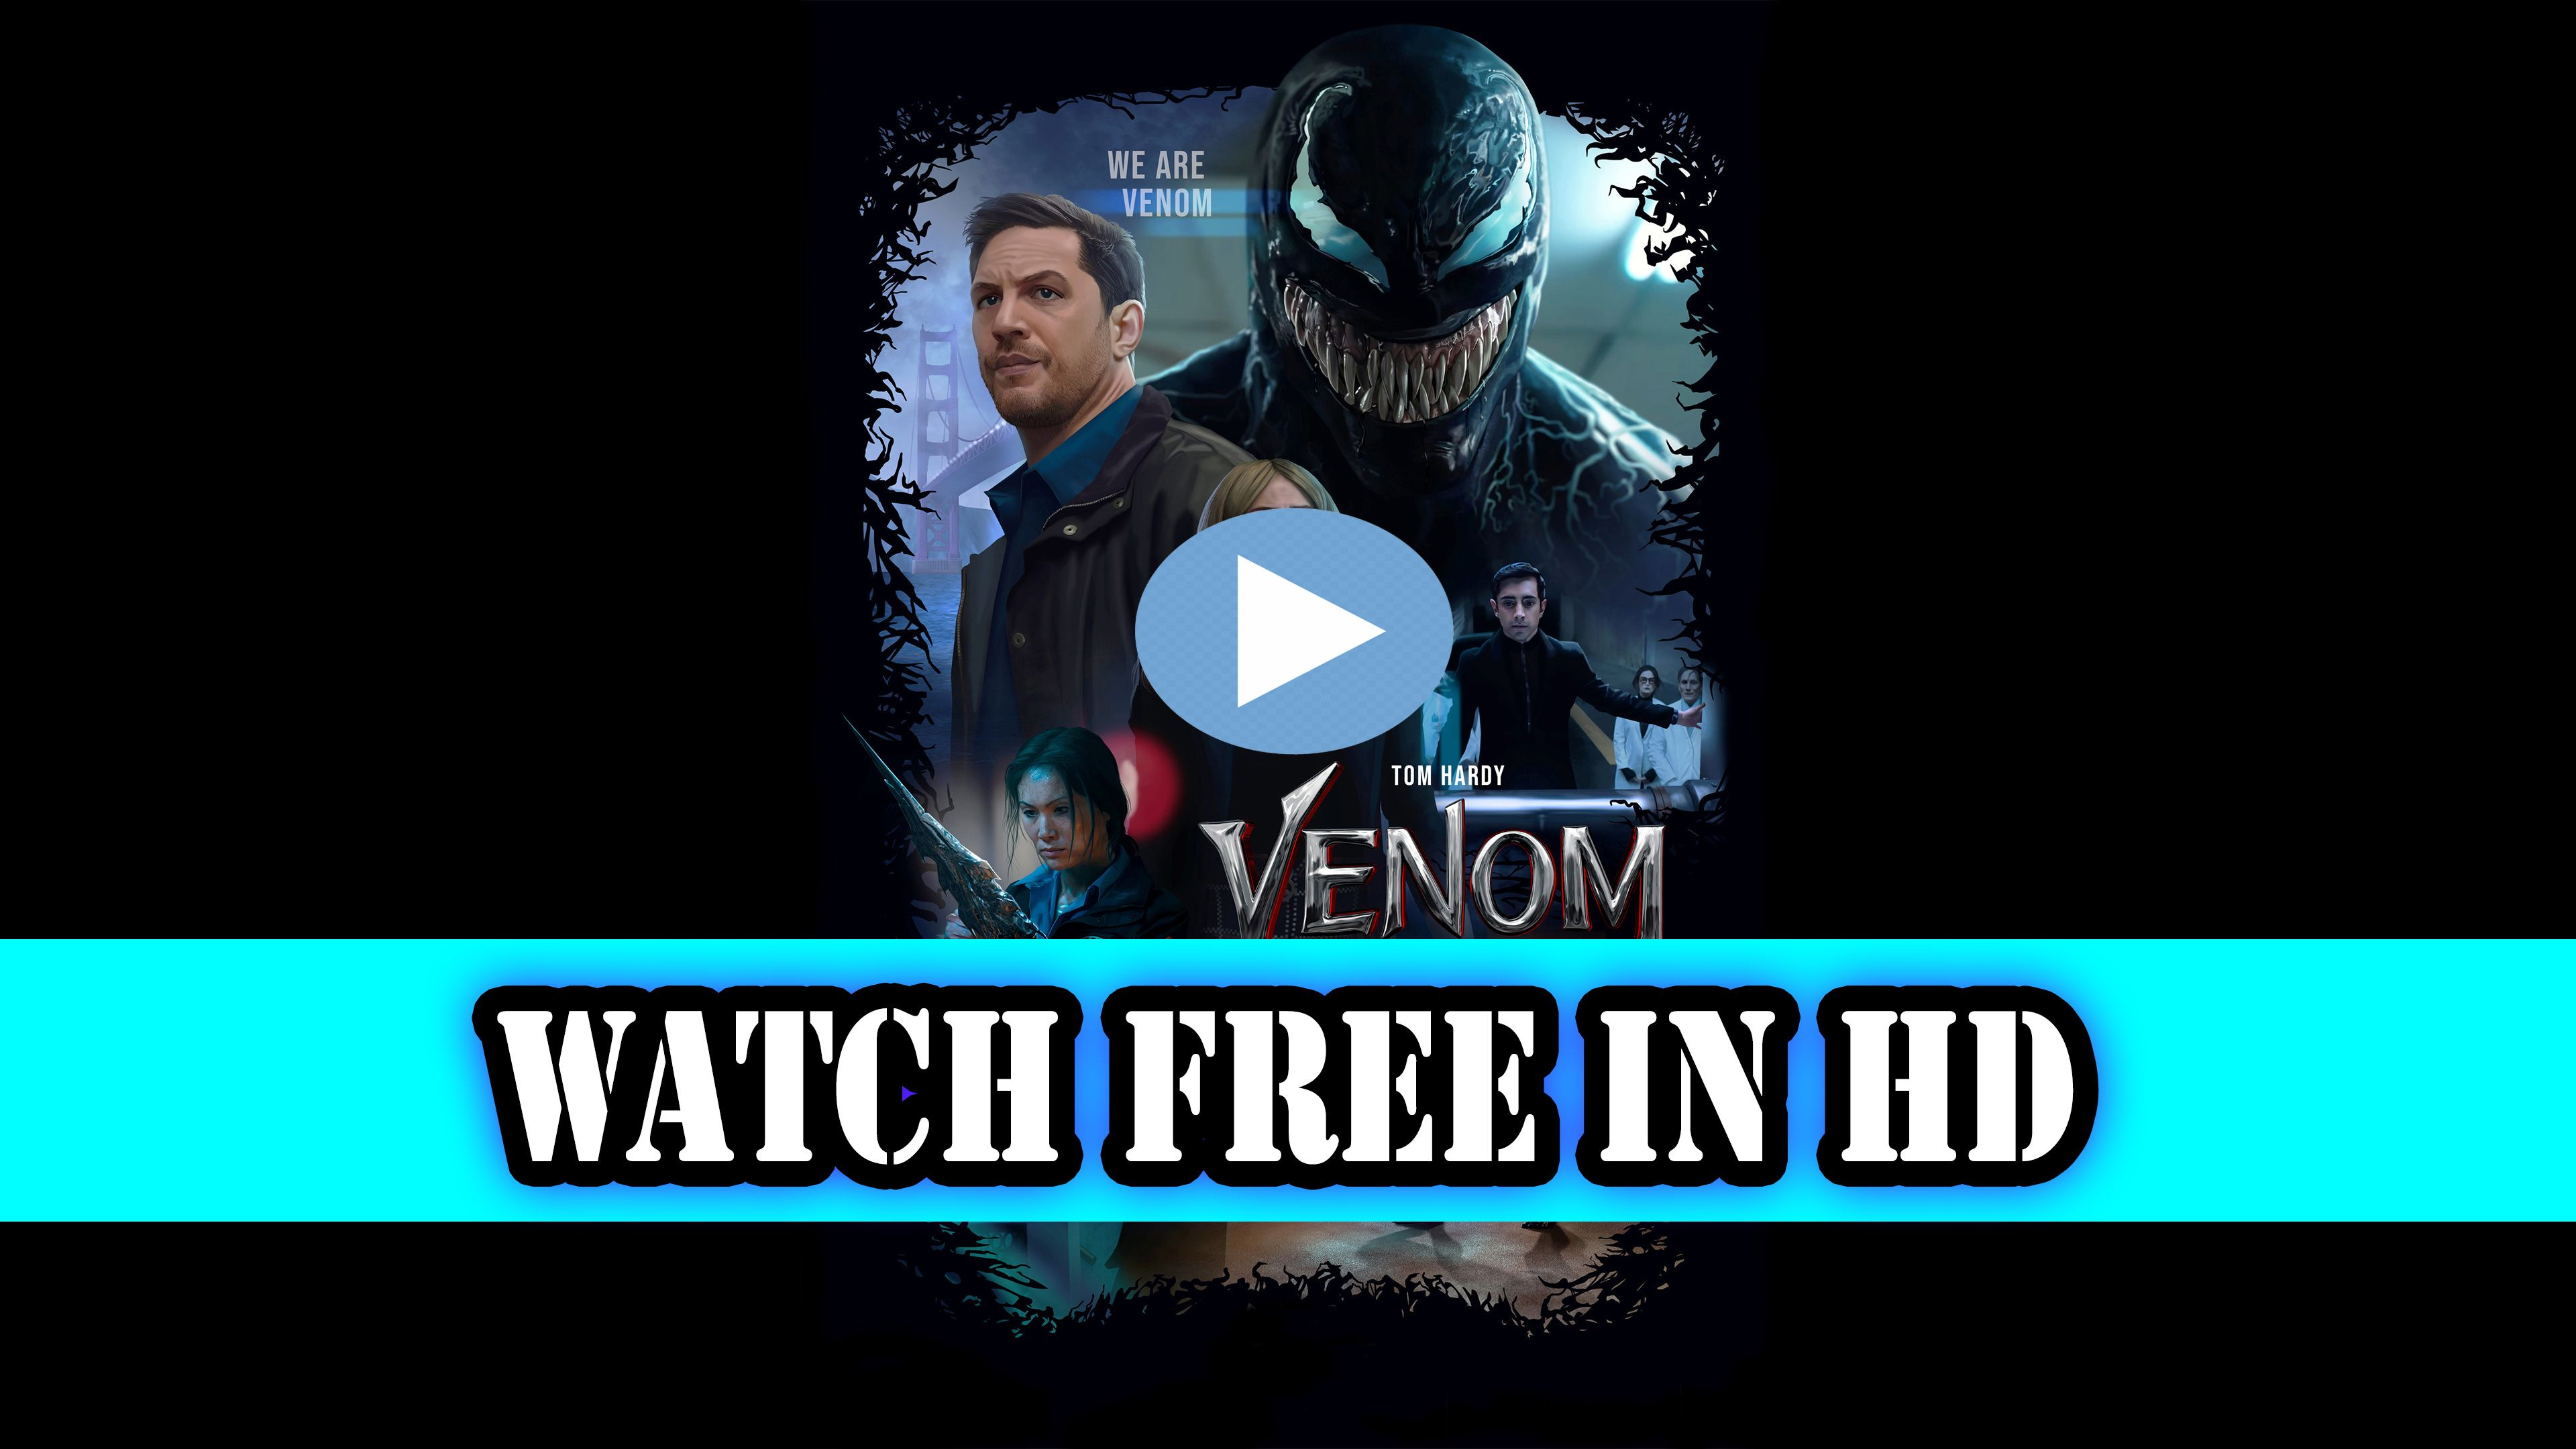 Latest hd movies online 2019 is a smart movie app that